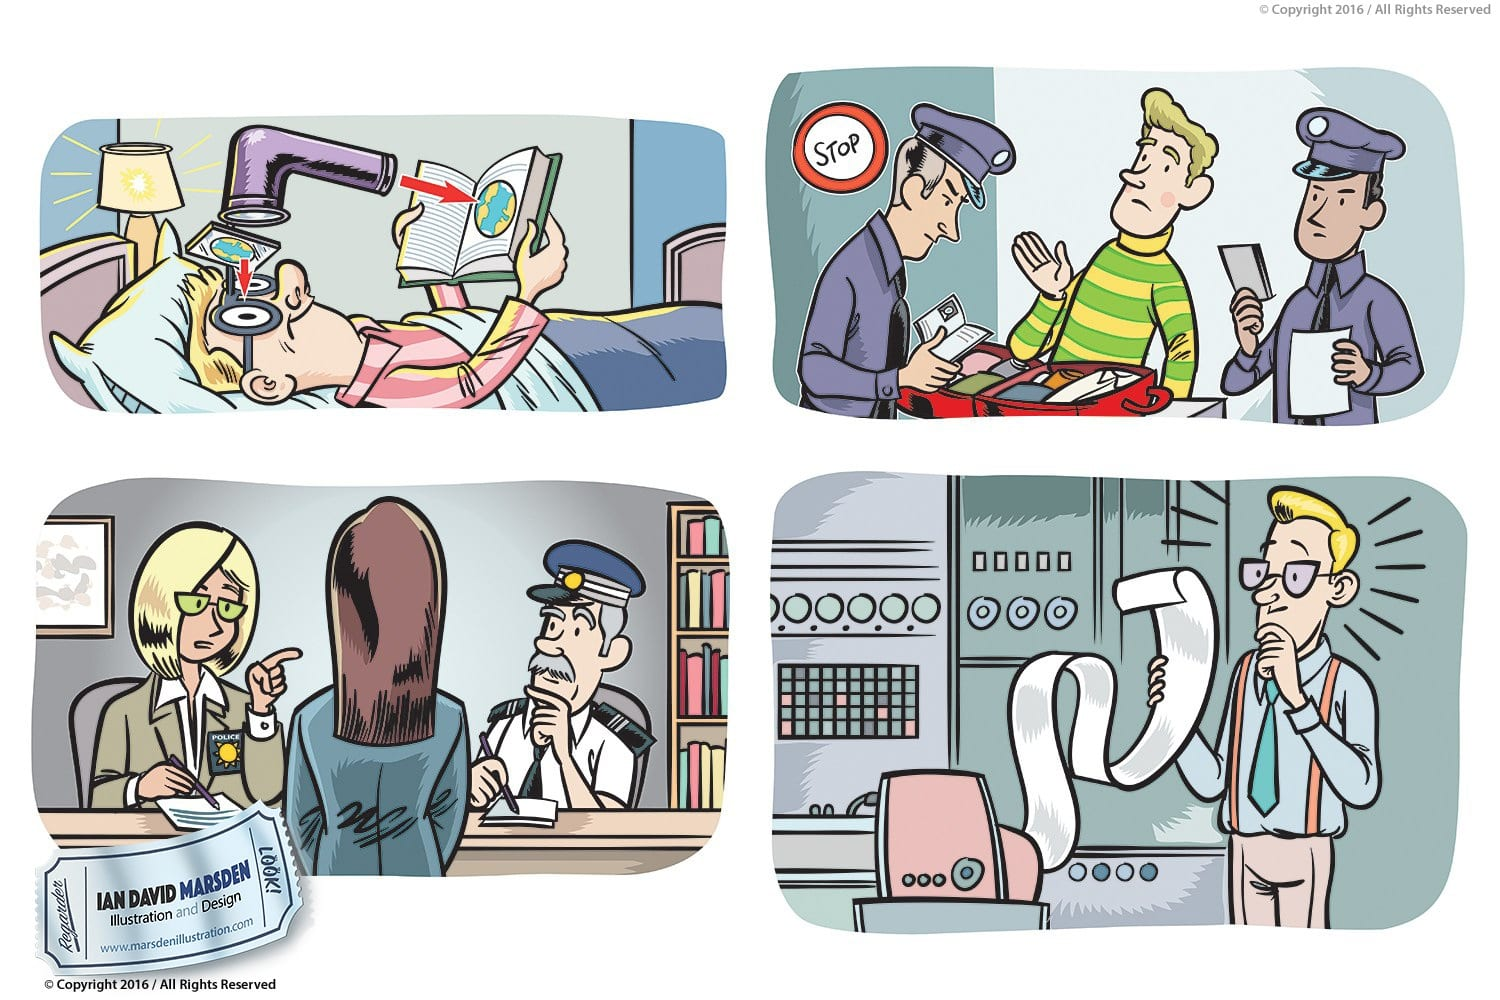 Illustrations for Educational Material